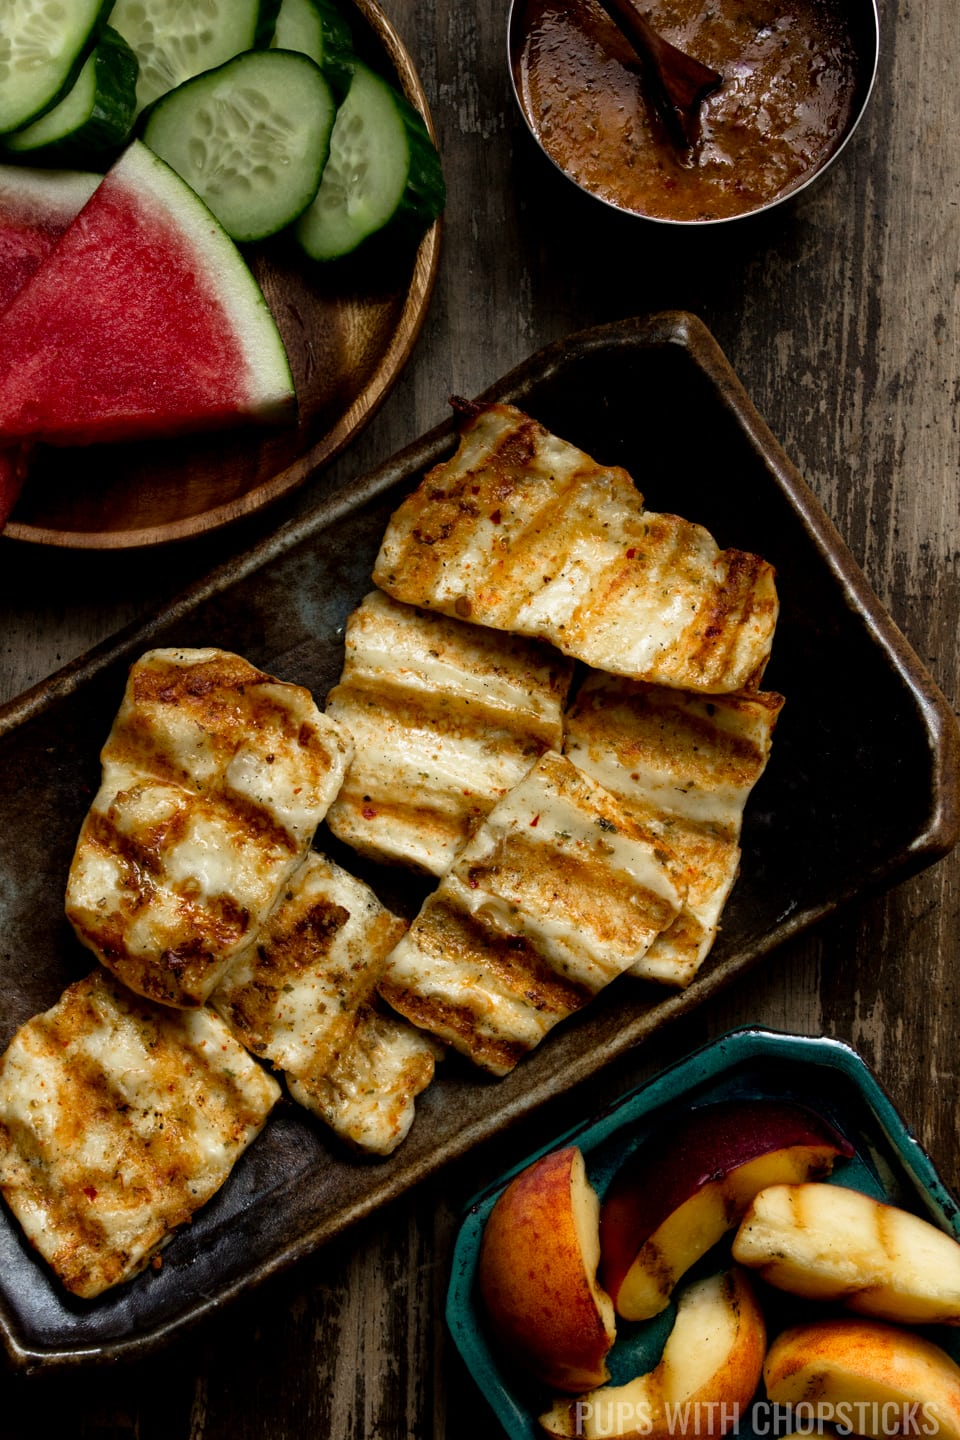 A grilled halloumi cheese recipe, marinated in a spiced basil chili oil and finished off with maple syrup